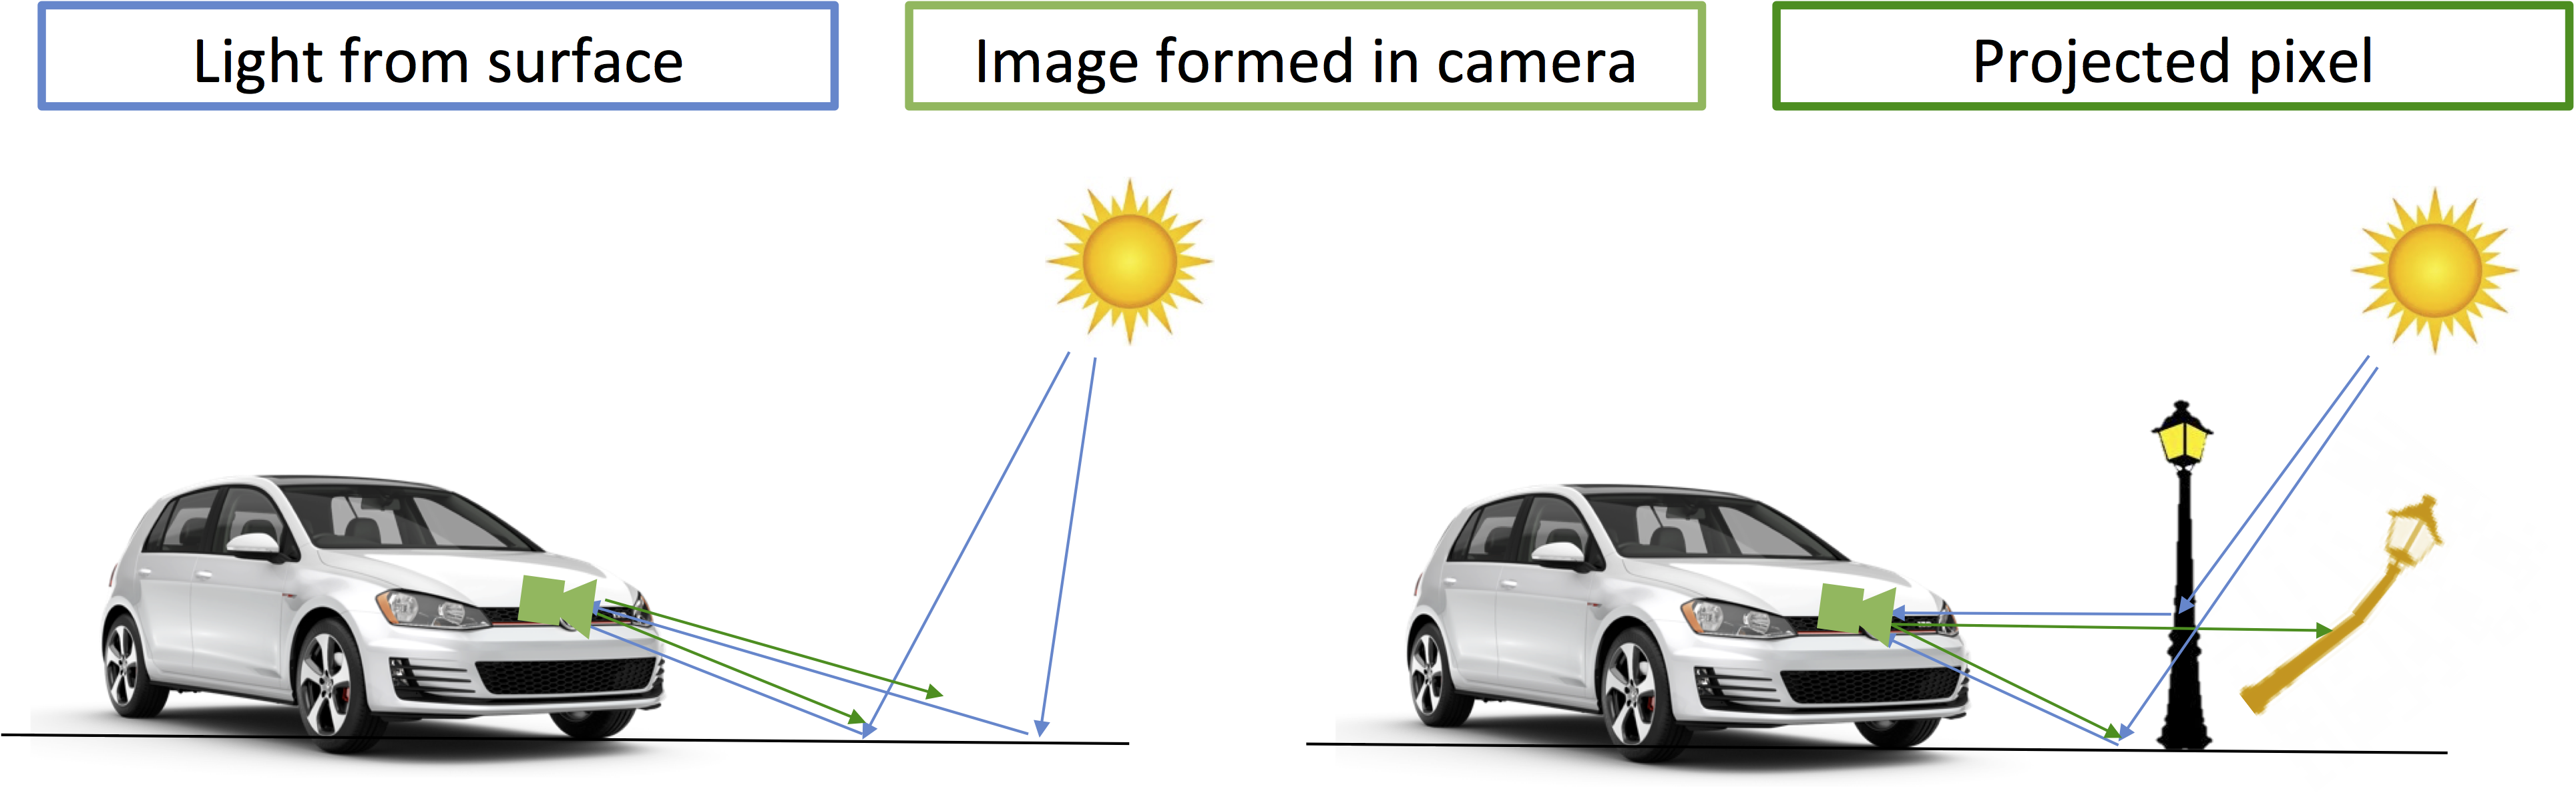 Computer Vision in Surround View Applications